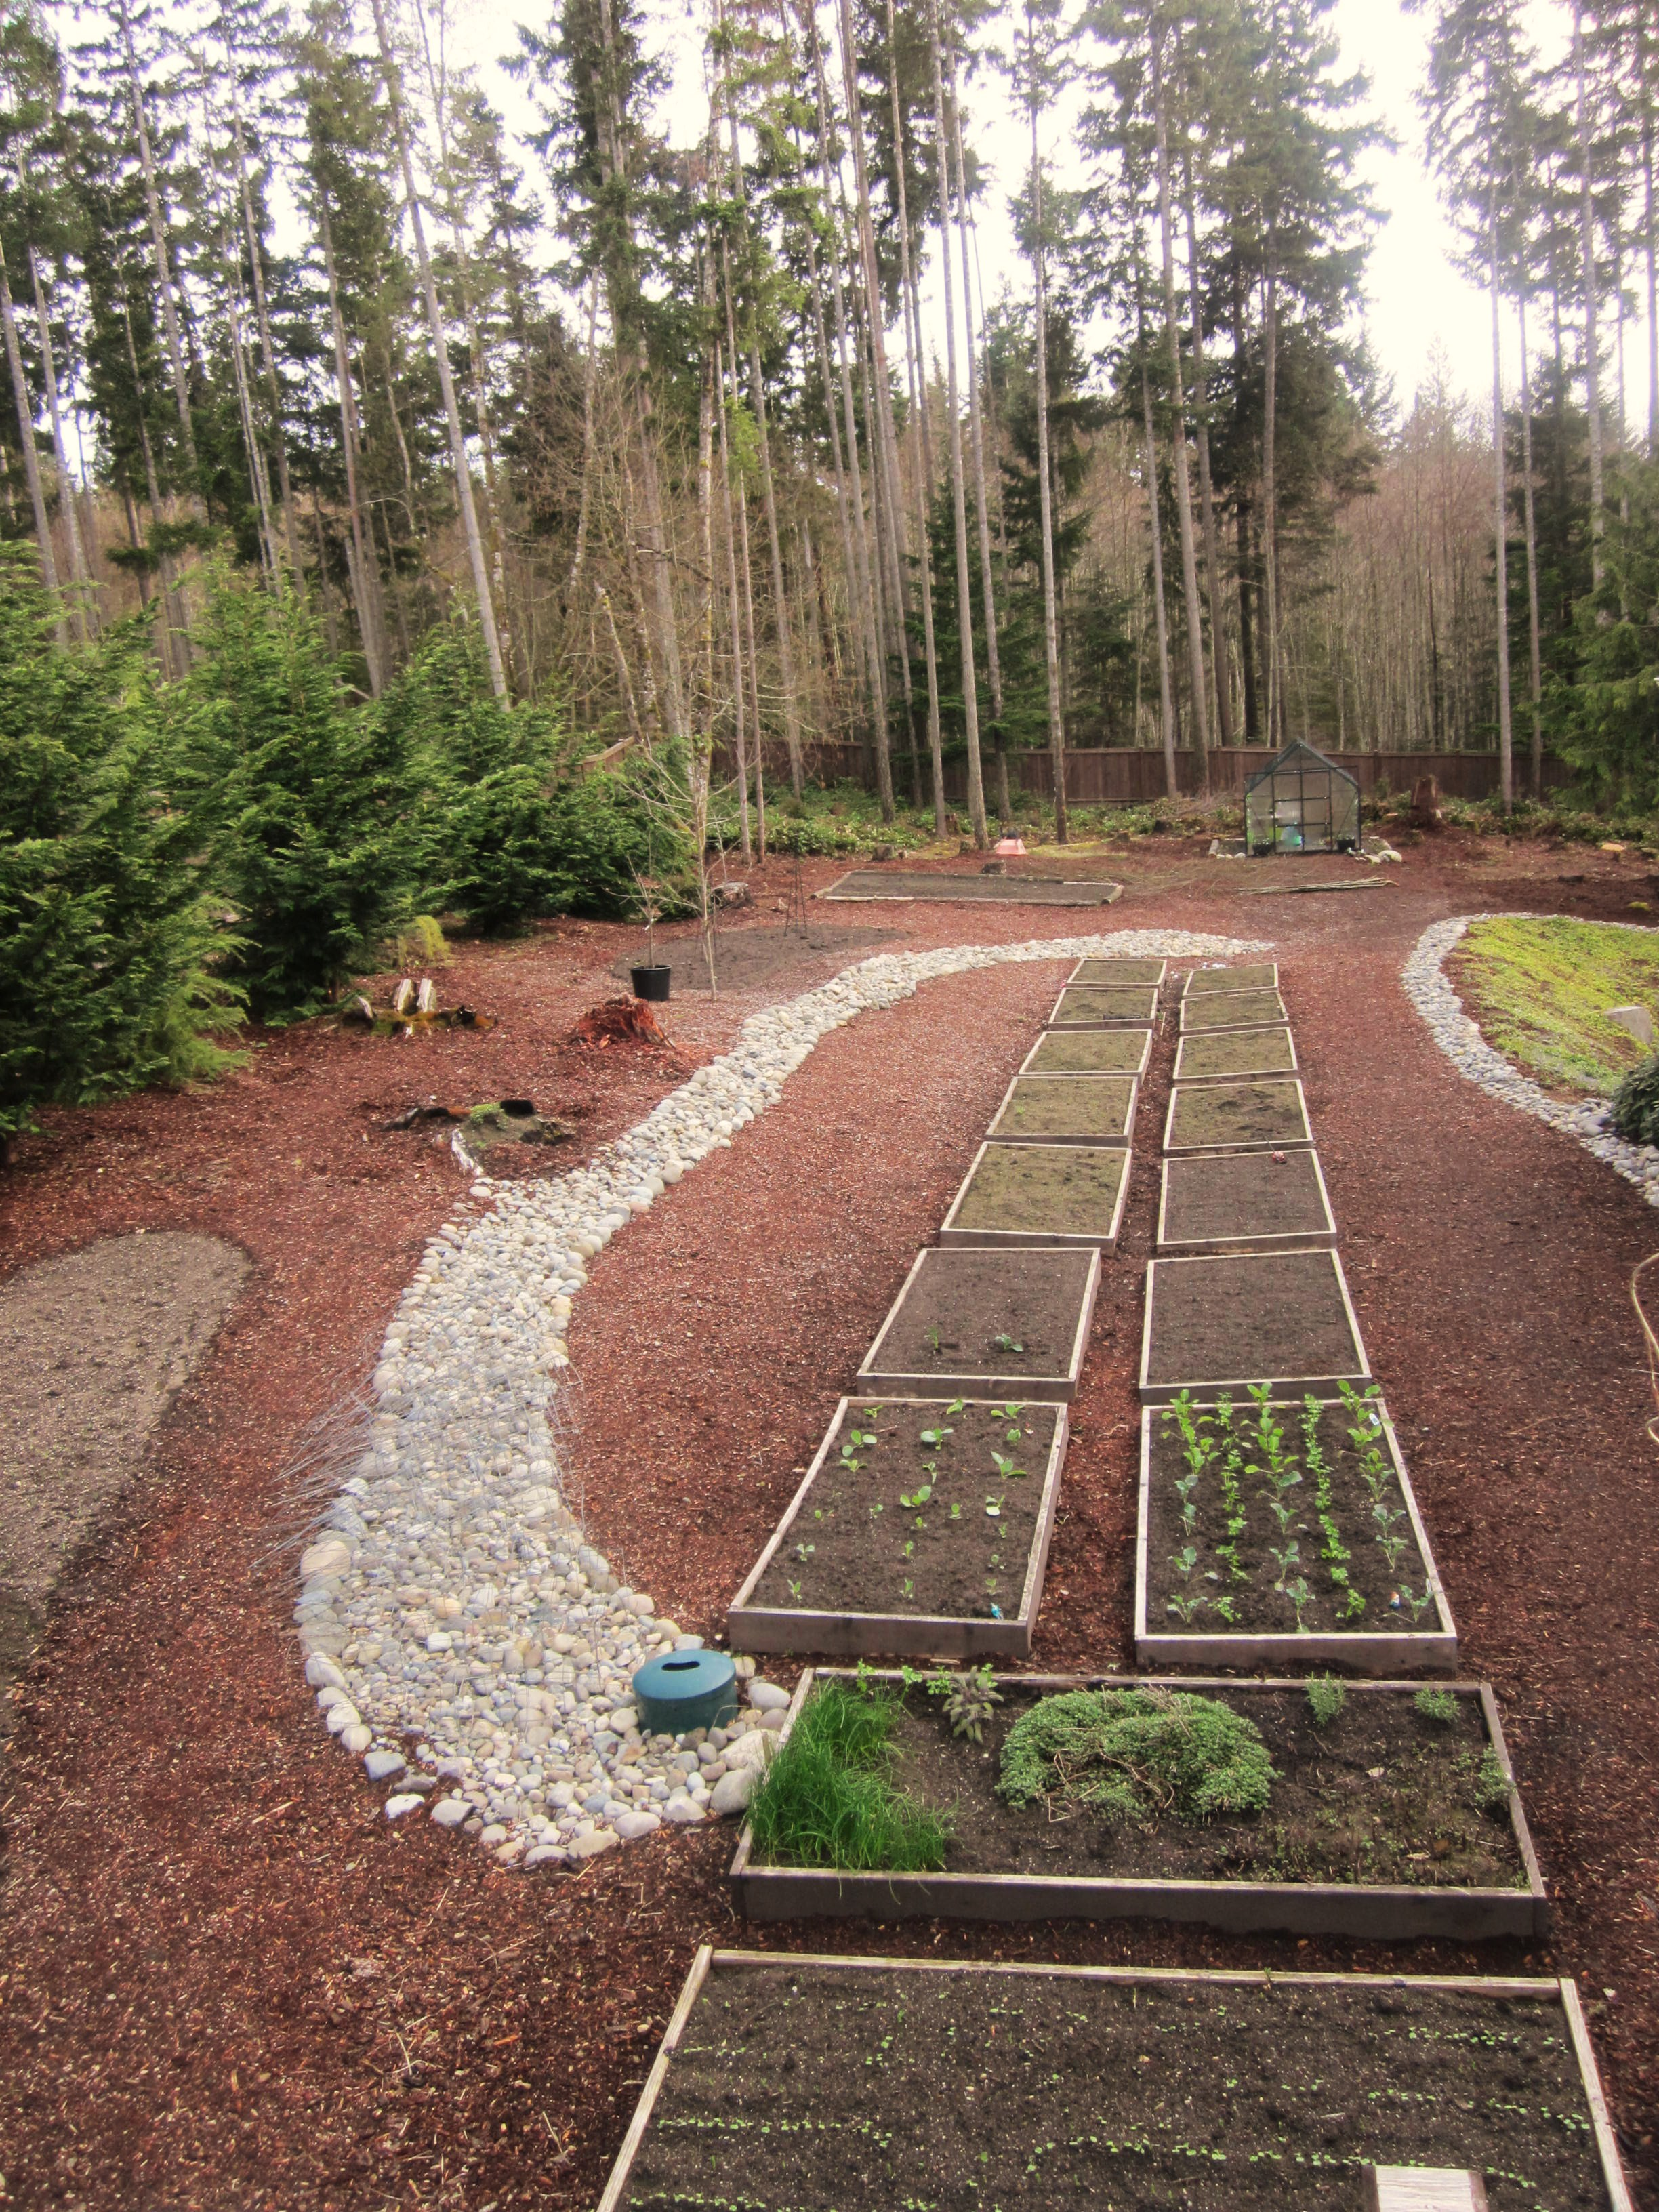 How to Grow Your Own Food: Garden Plot Pictures